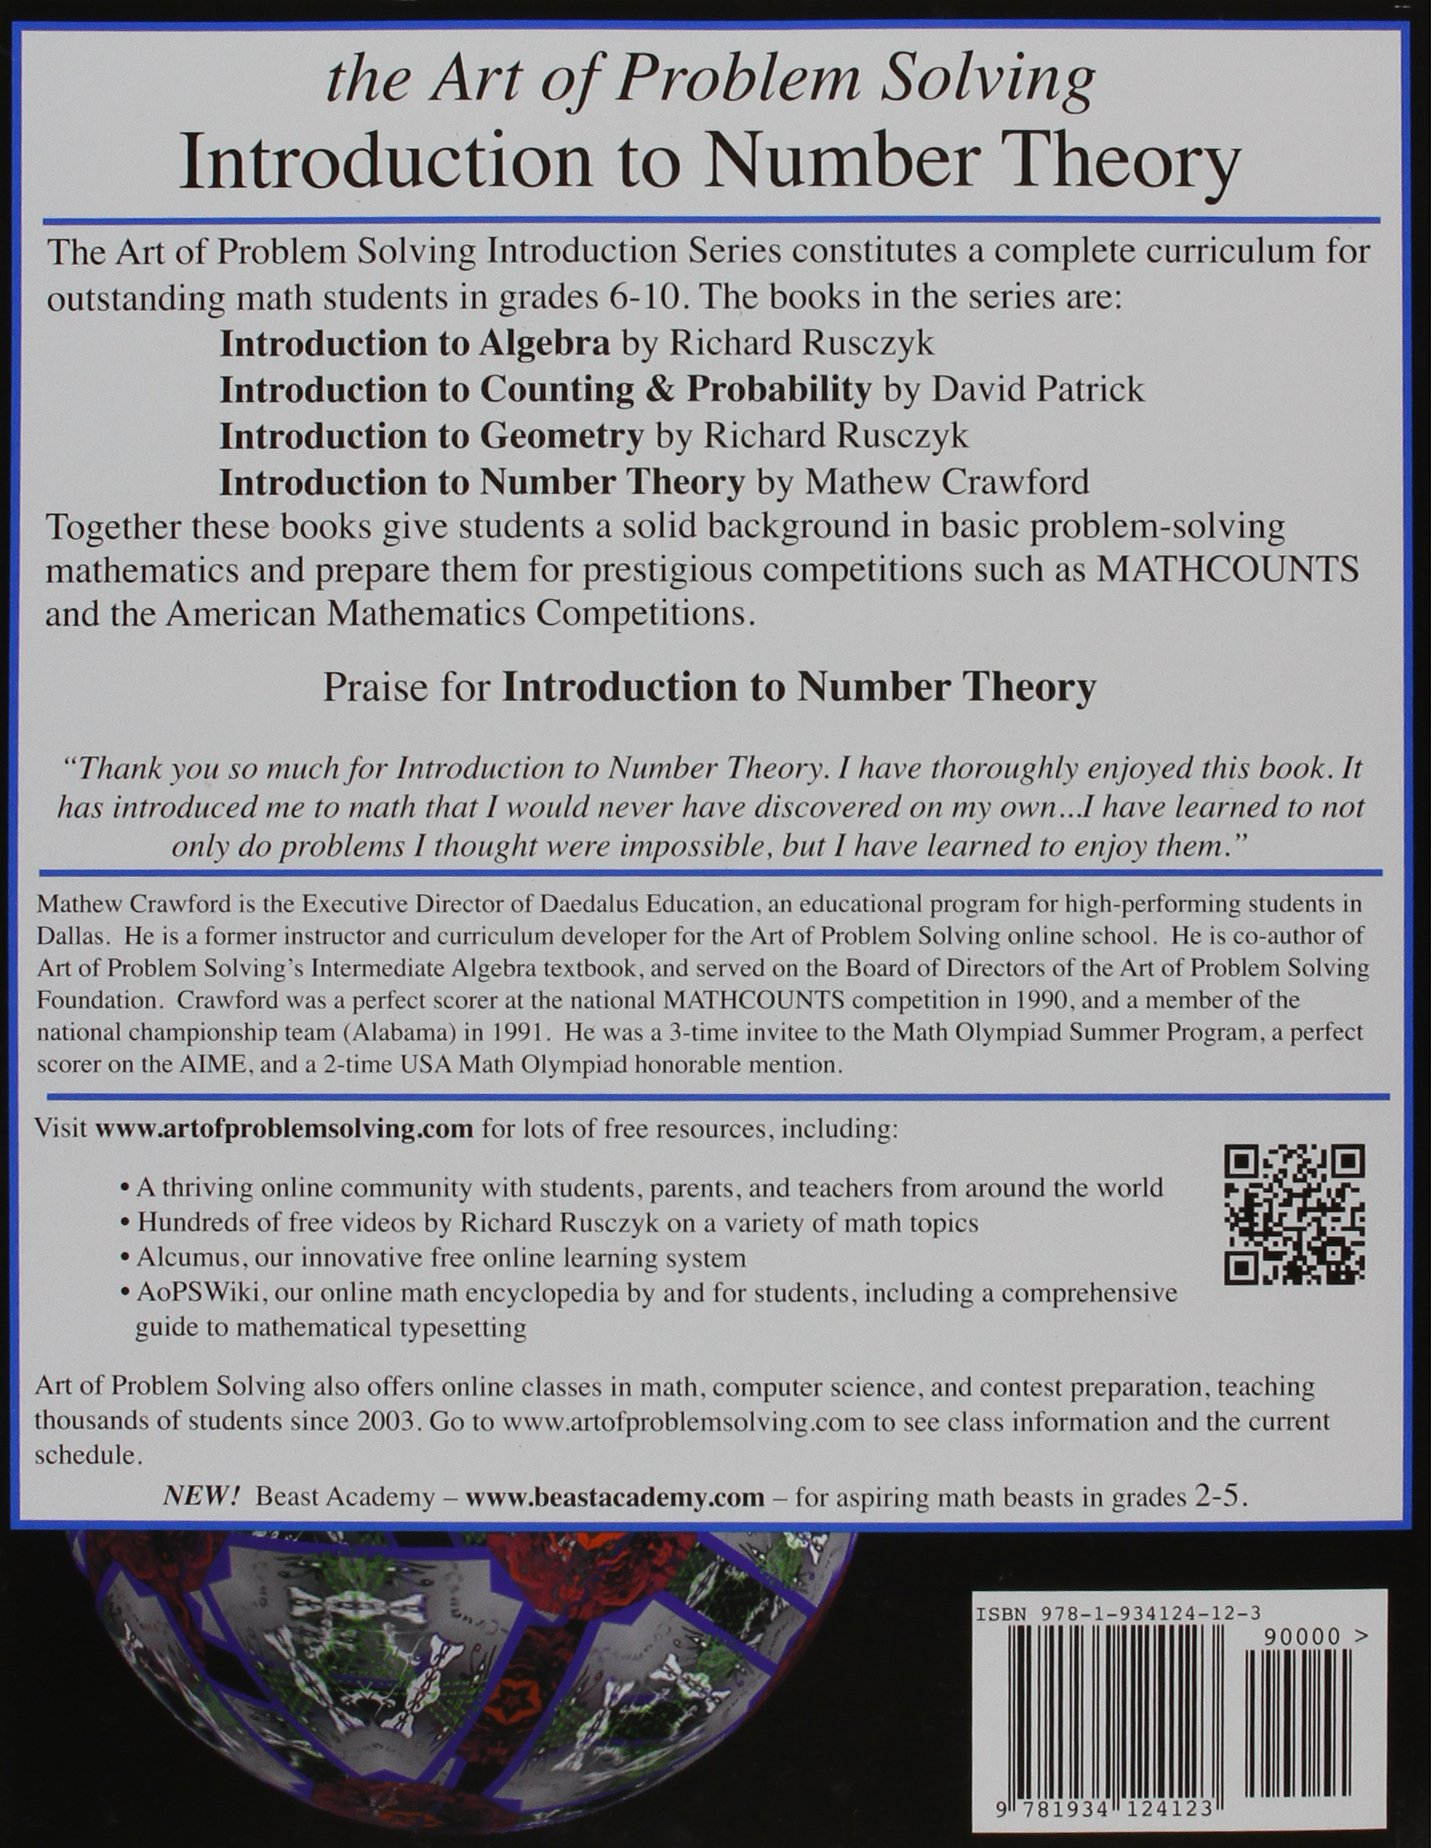 Buy Introduction to Number Theory (Art of Problem Solving